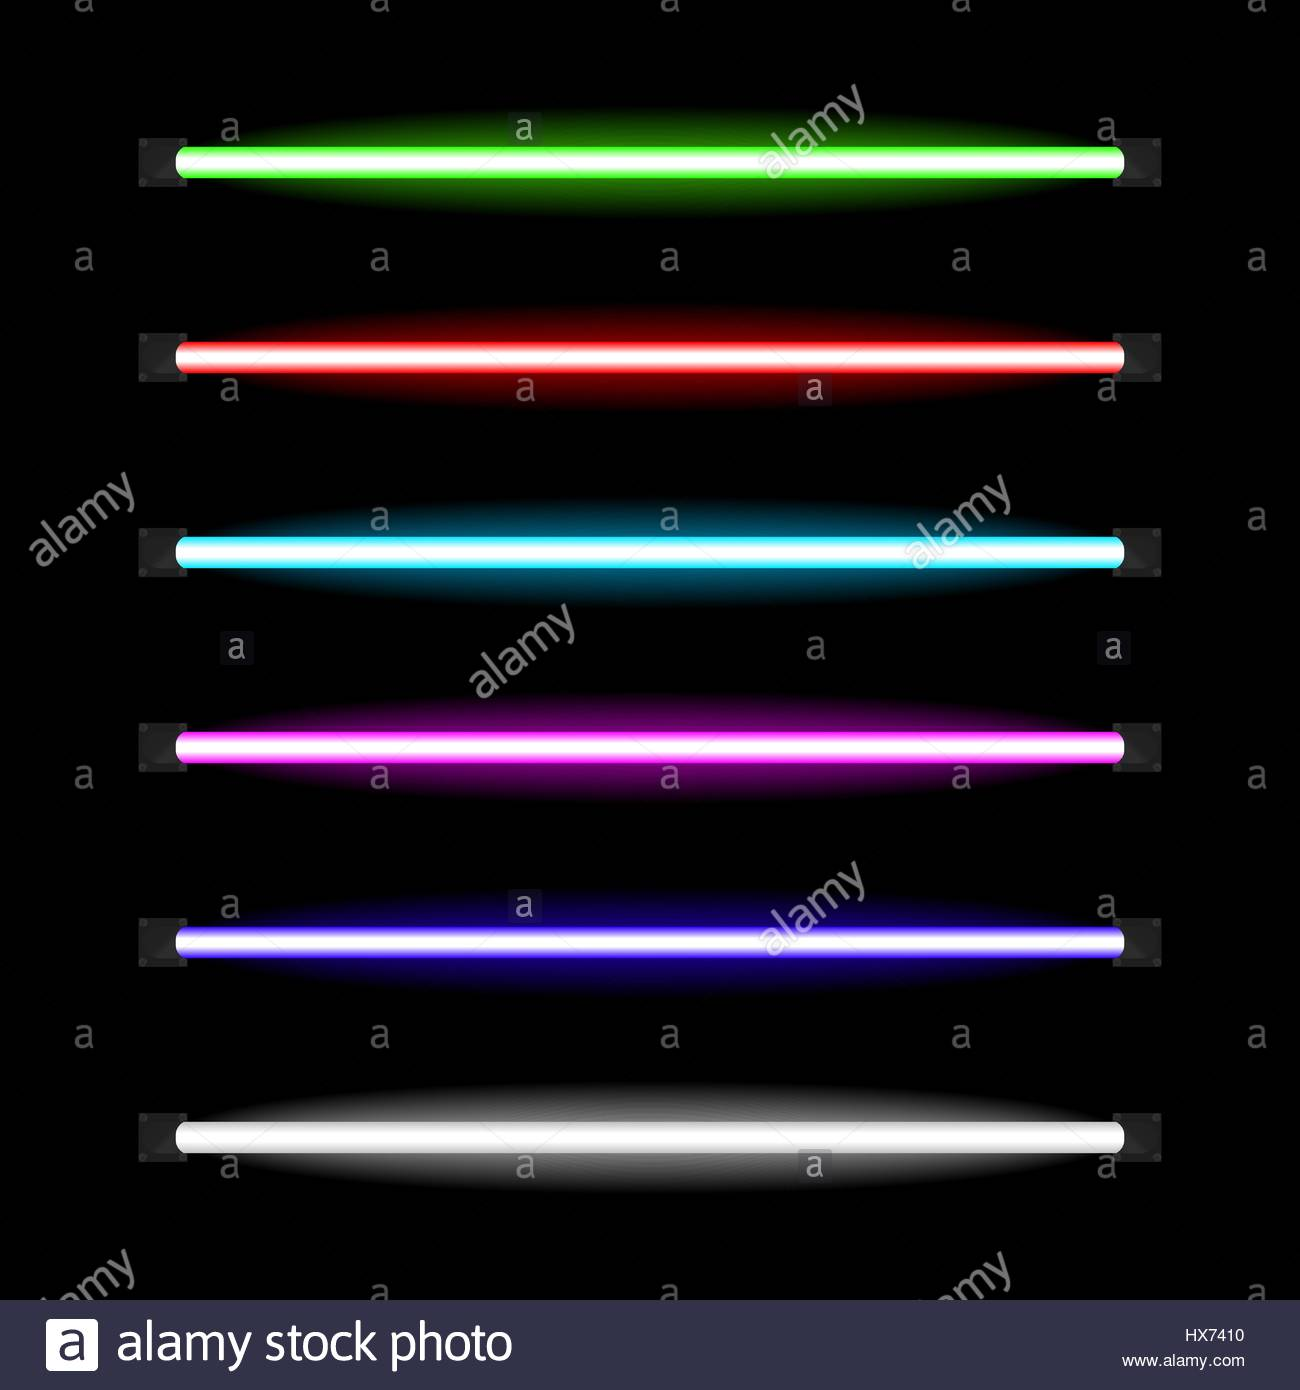 Neon Lamps Of Different Colors Glowing In The Darkness